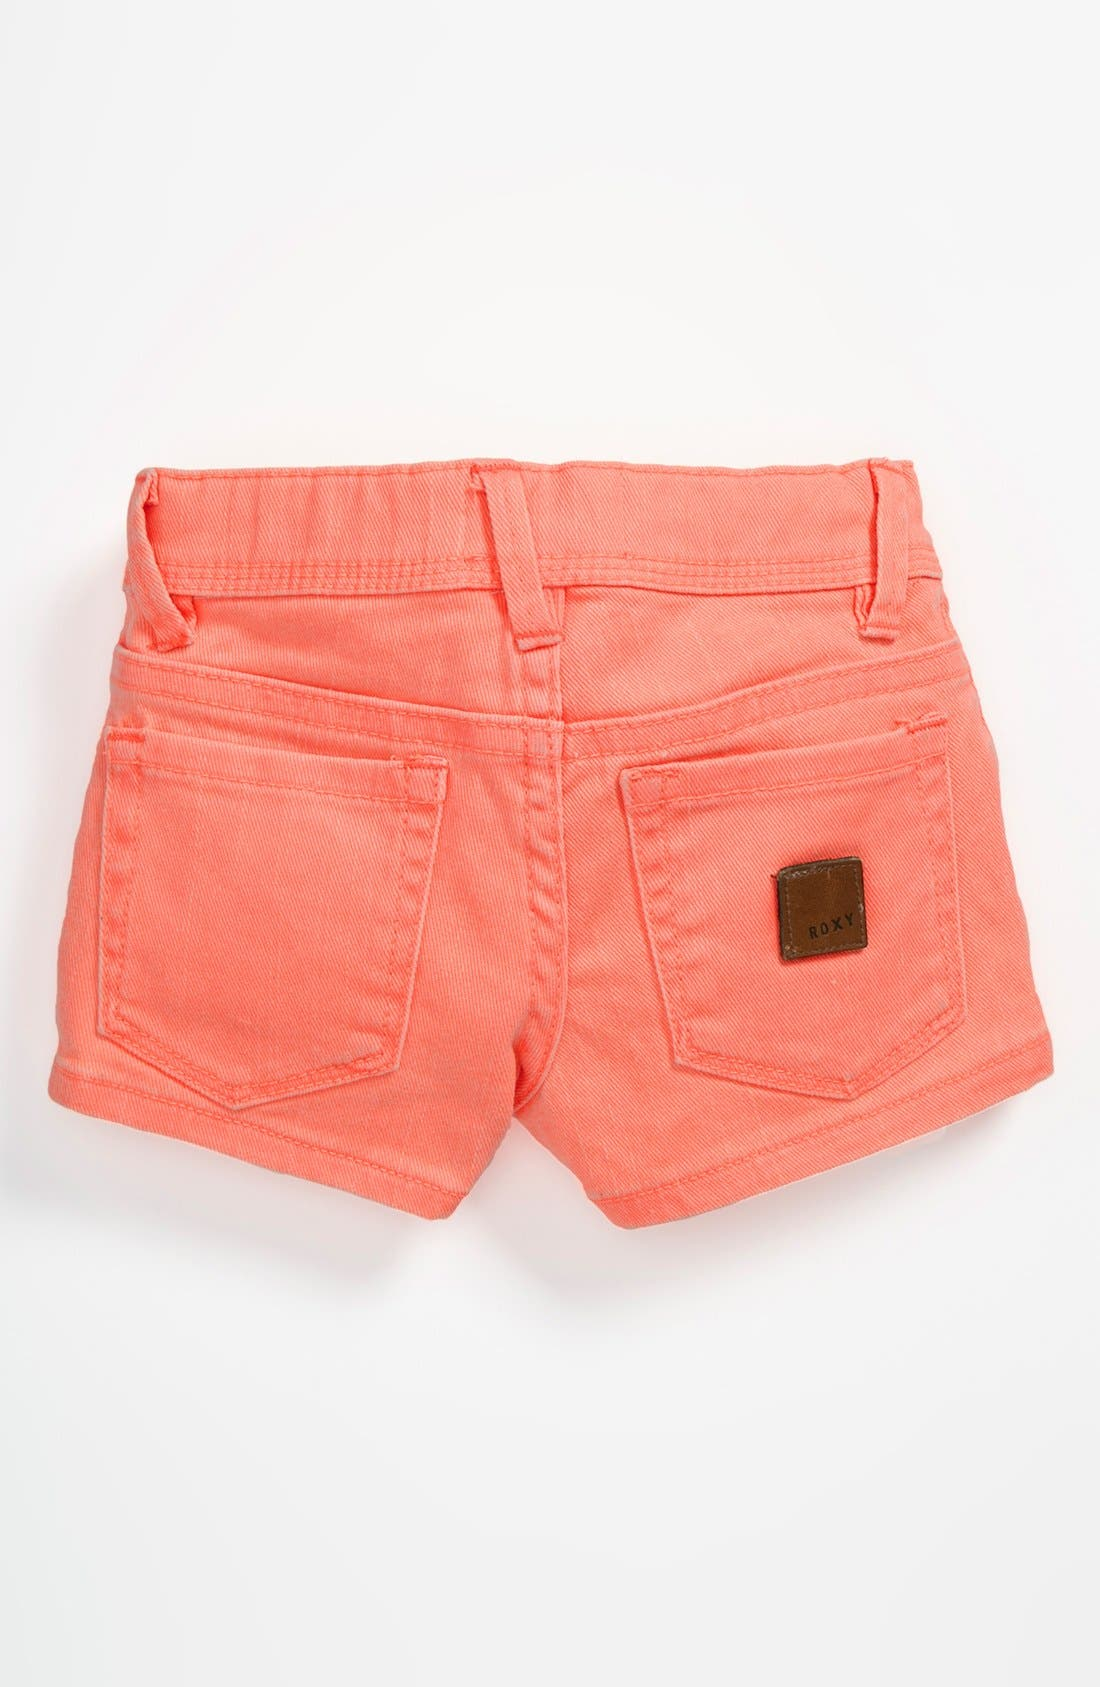 Alternate Image 1 Selected - Roxy 'Ferris Wheel' Denim Shorts (Little Girls)